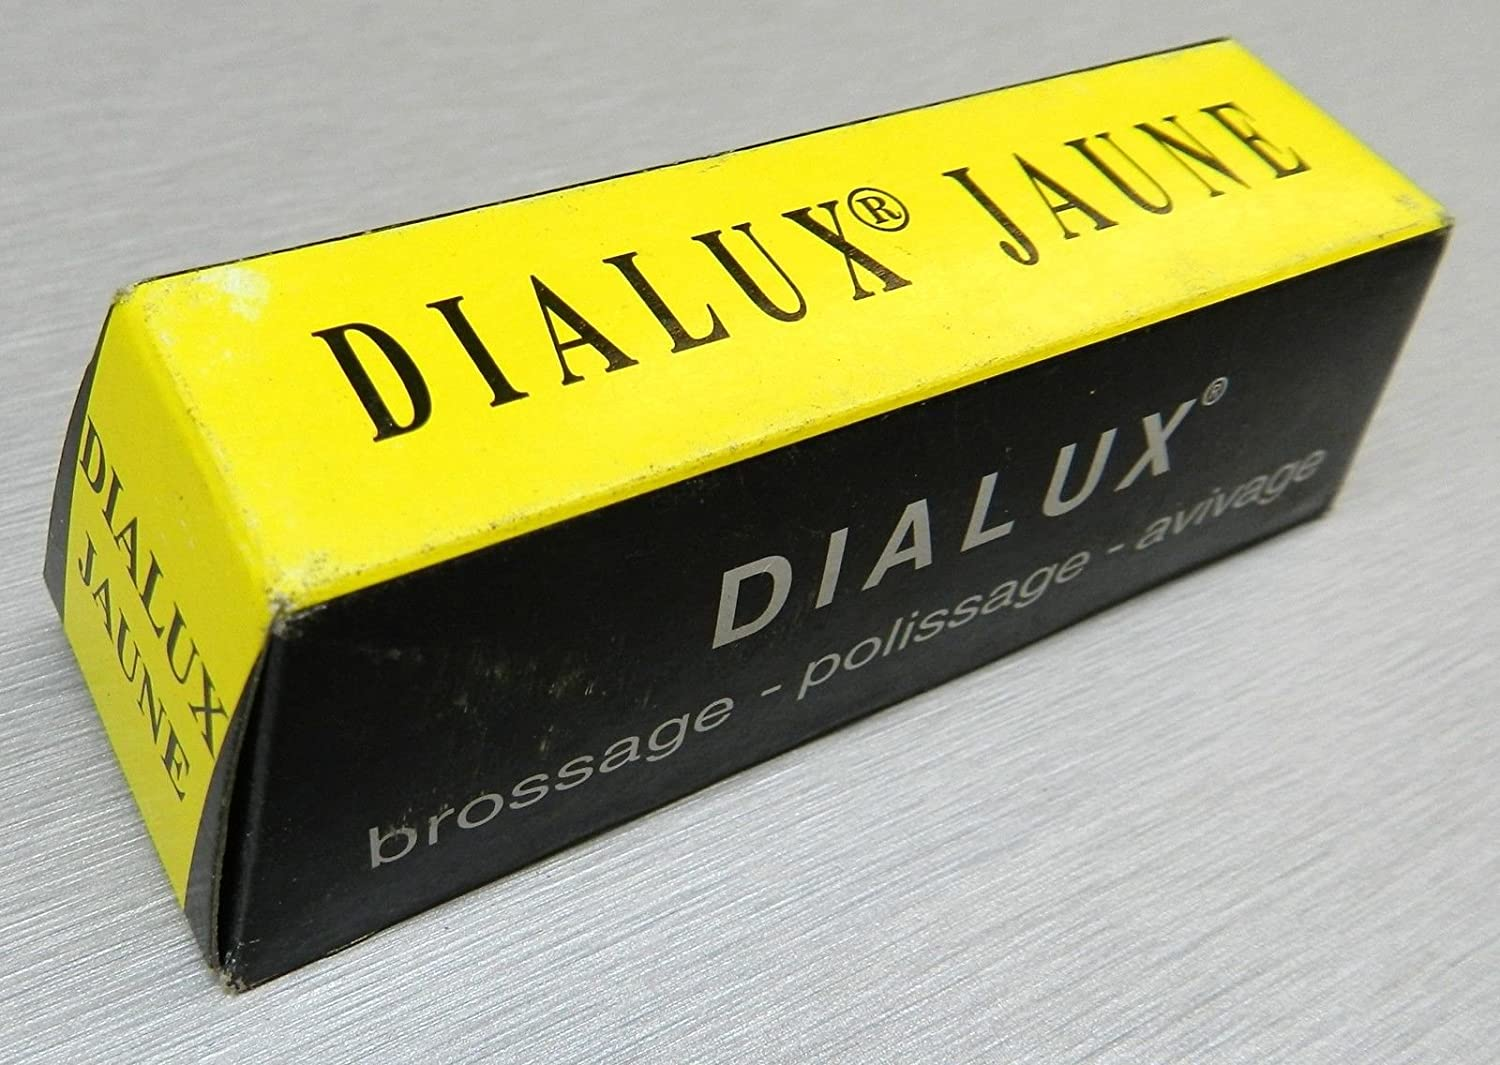 YELLOW DIALUX JAUNE YELLOW METALS POLISHING COMPOUND ROUGE BRASS